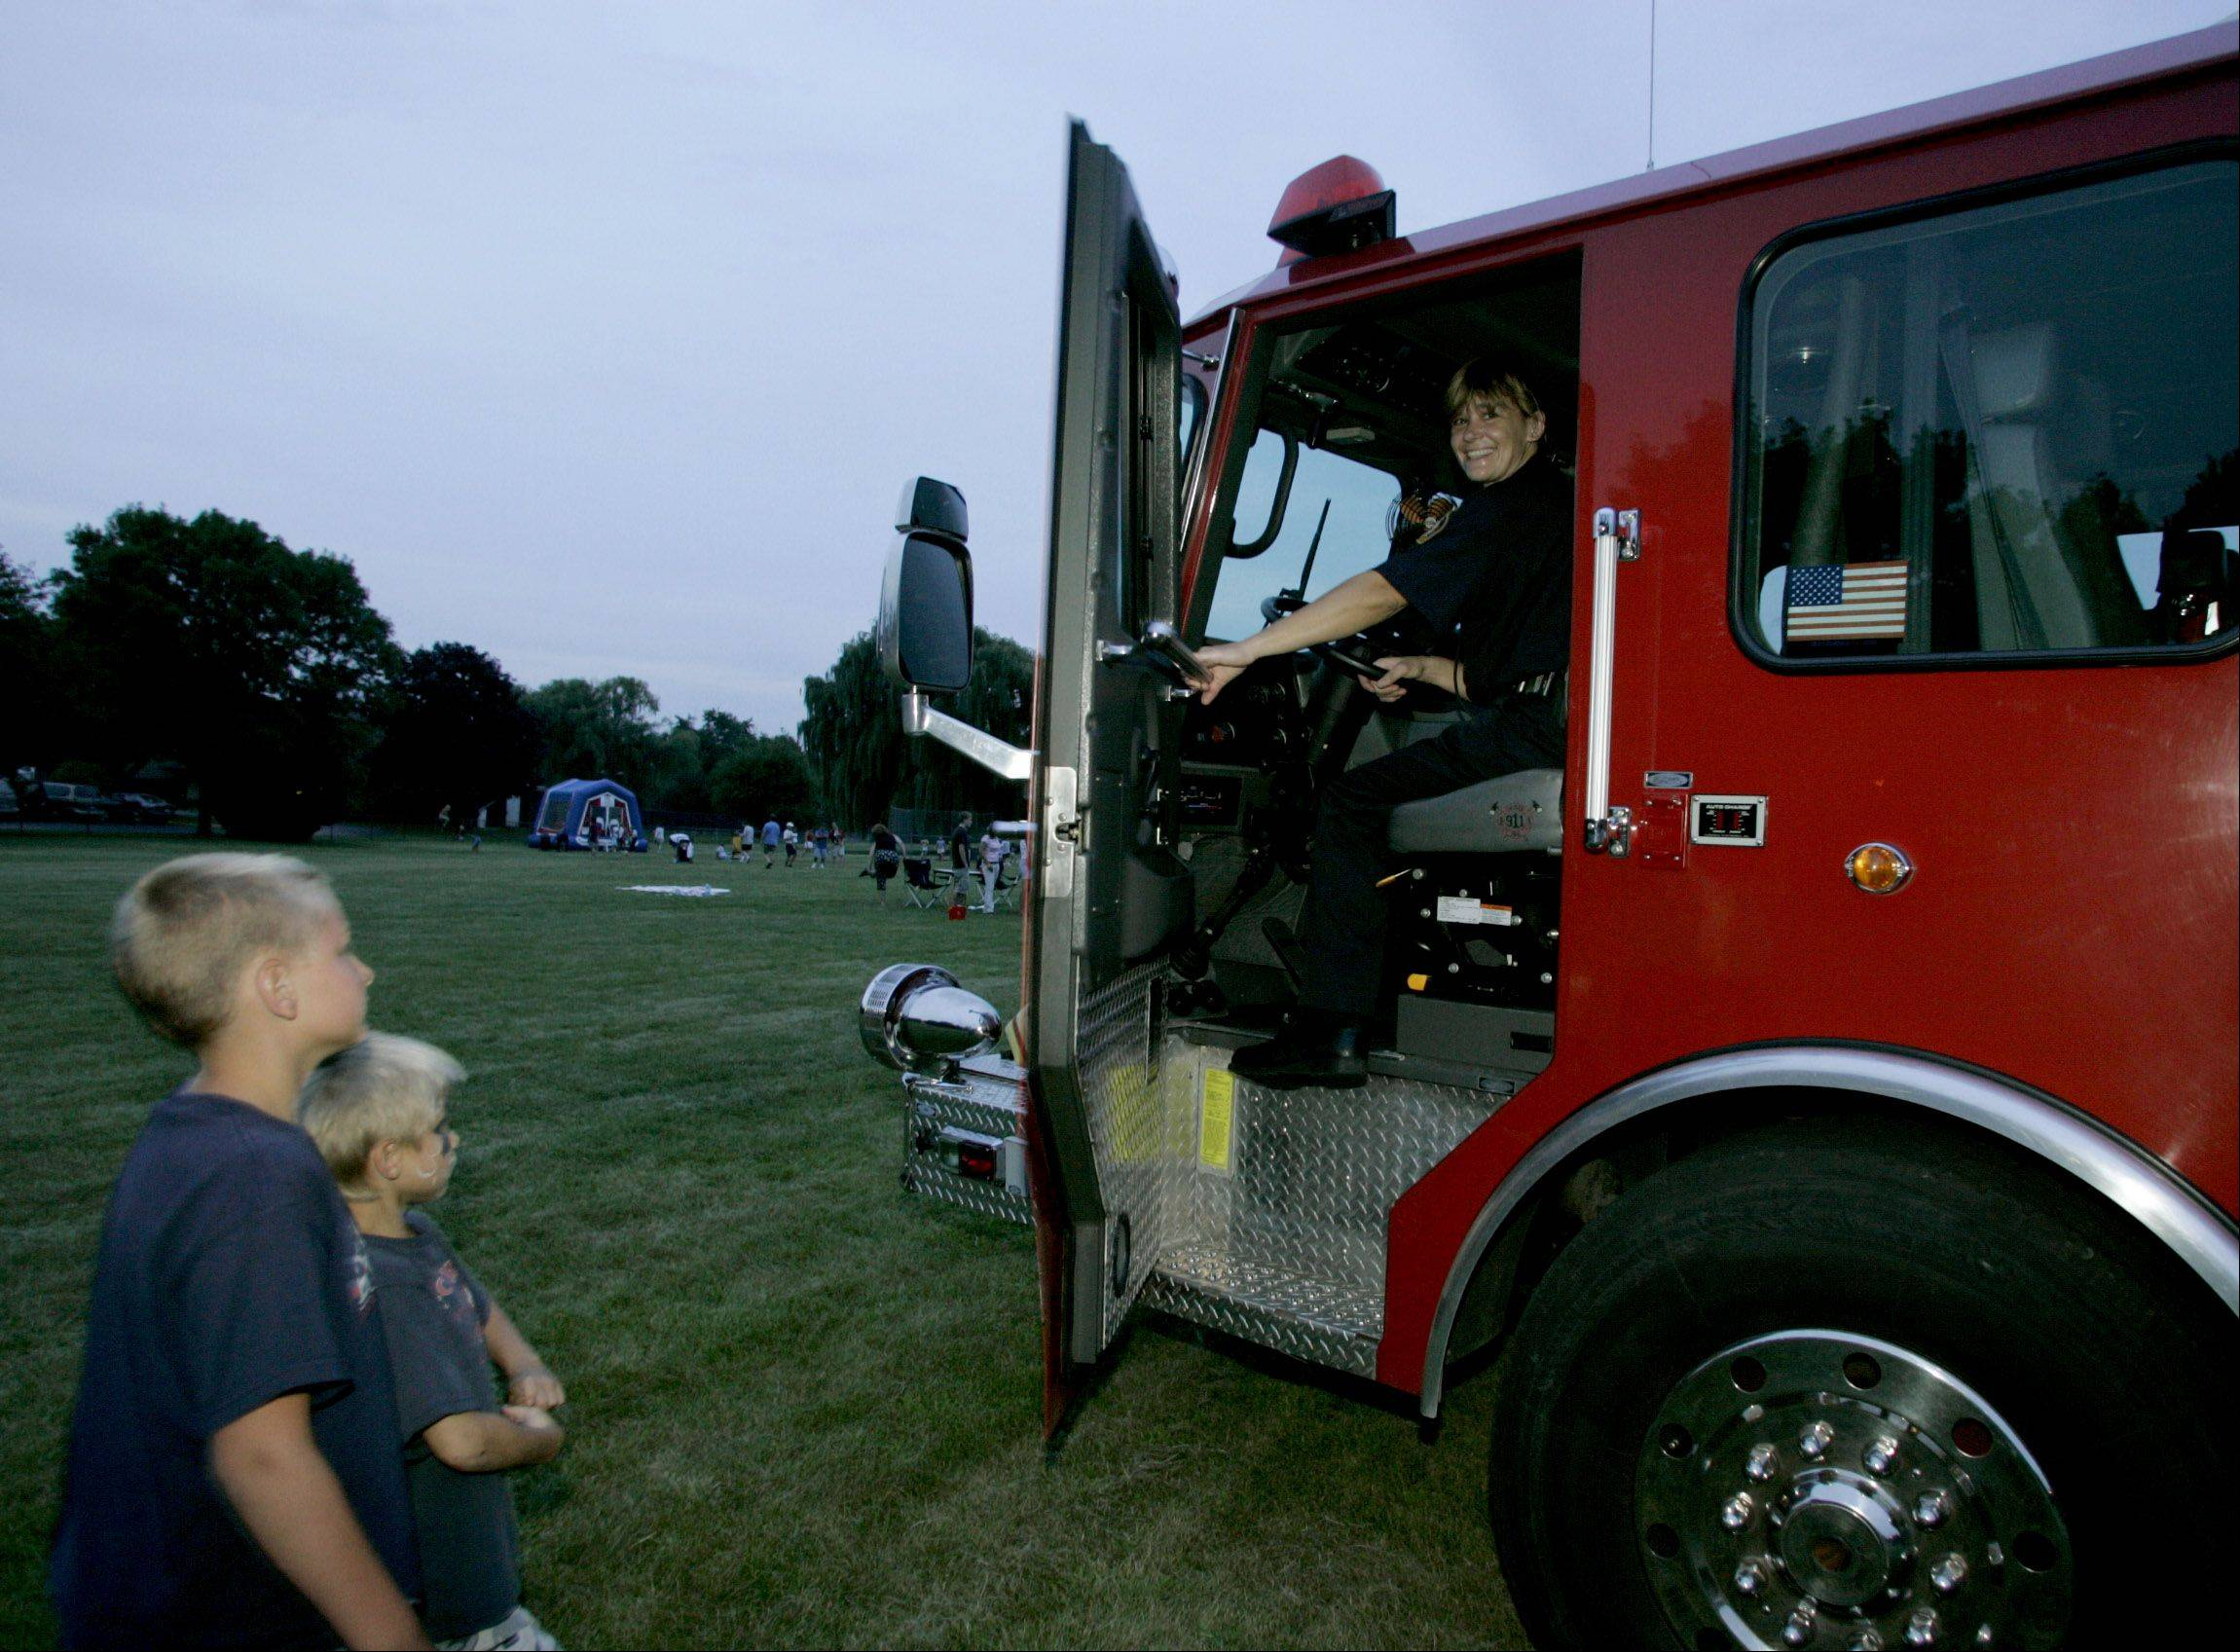 DuPage communities from Itasca to Naperville will observe National Night Out Tuesday, Aug. 7, with a variety of events designed to bring residents in contact with firefighters, police officers and others.